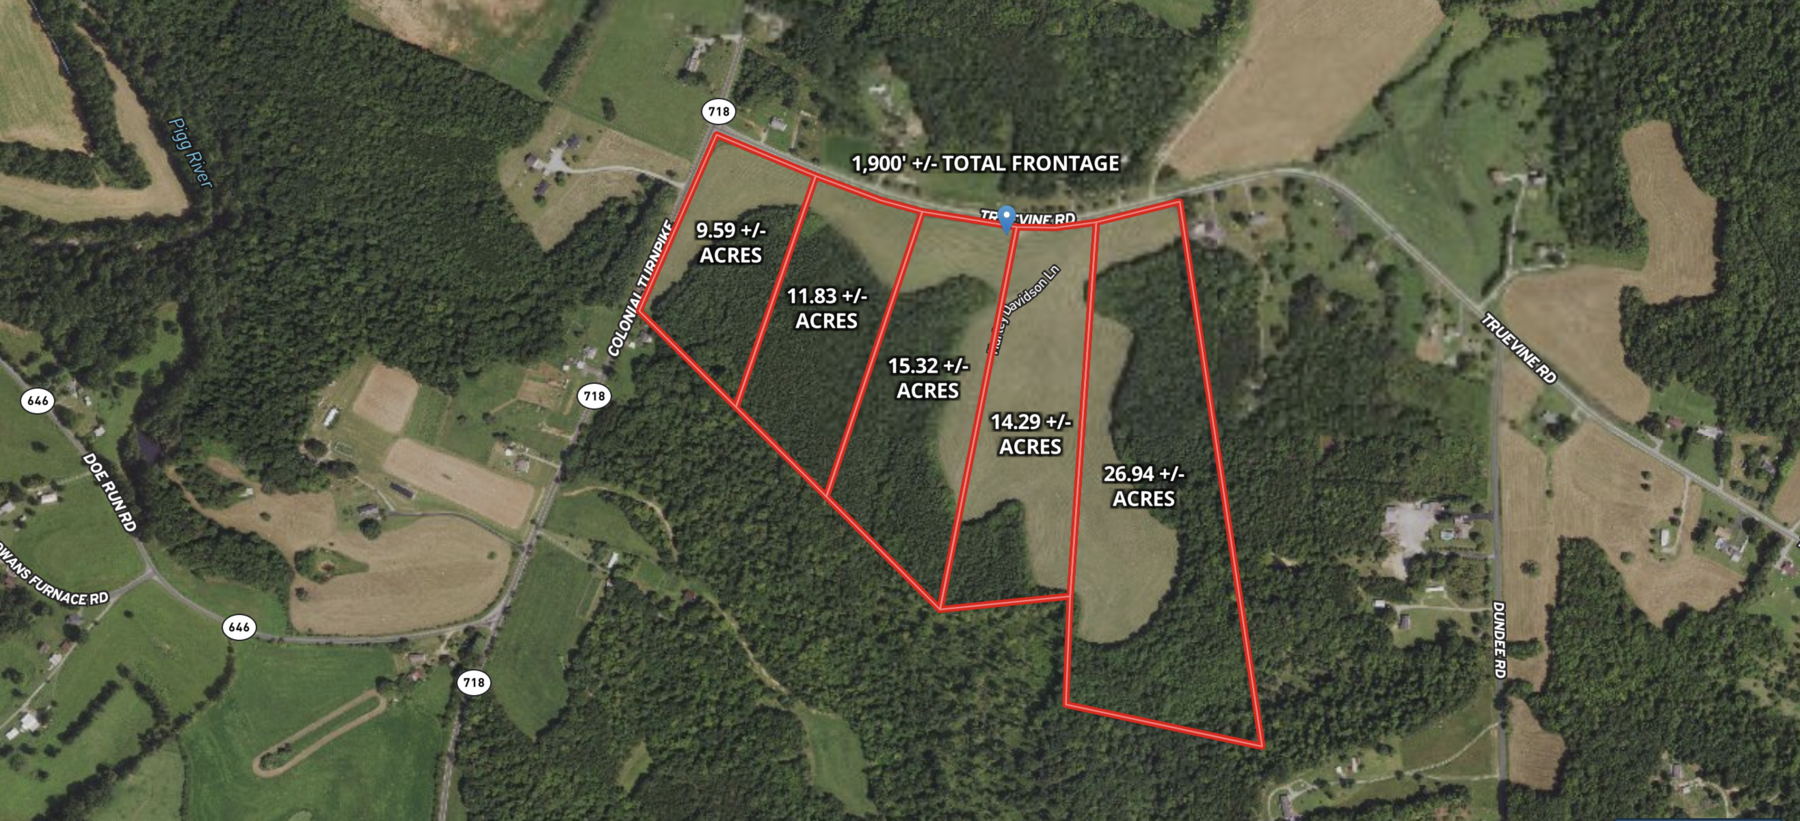 Image for Parcel 2 (11.83+/- acres) of 5 Individual Land Parcels Totaling 77.9 +/- Acres in Franklin County, VA, Only 10 Miles from Smith Mountain Lake--ONLINE ONLY BIDDING!!